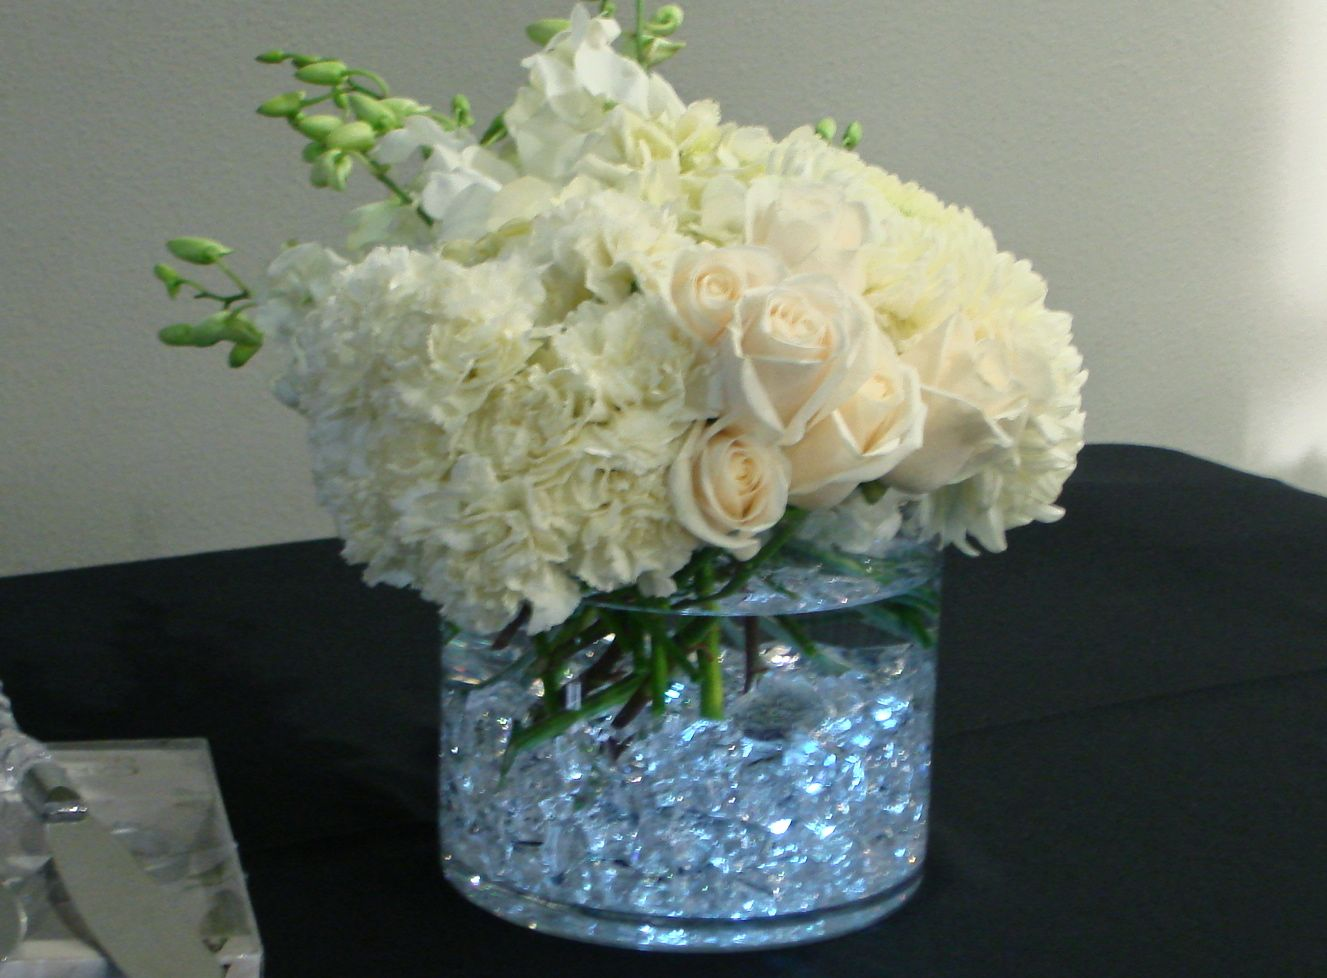 Seasonal whites led lights gems centerpiece flowers